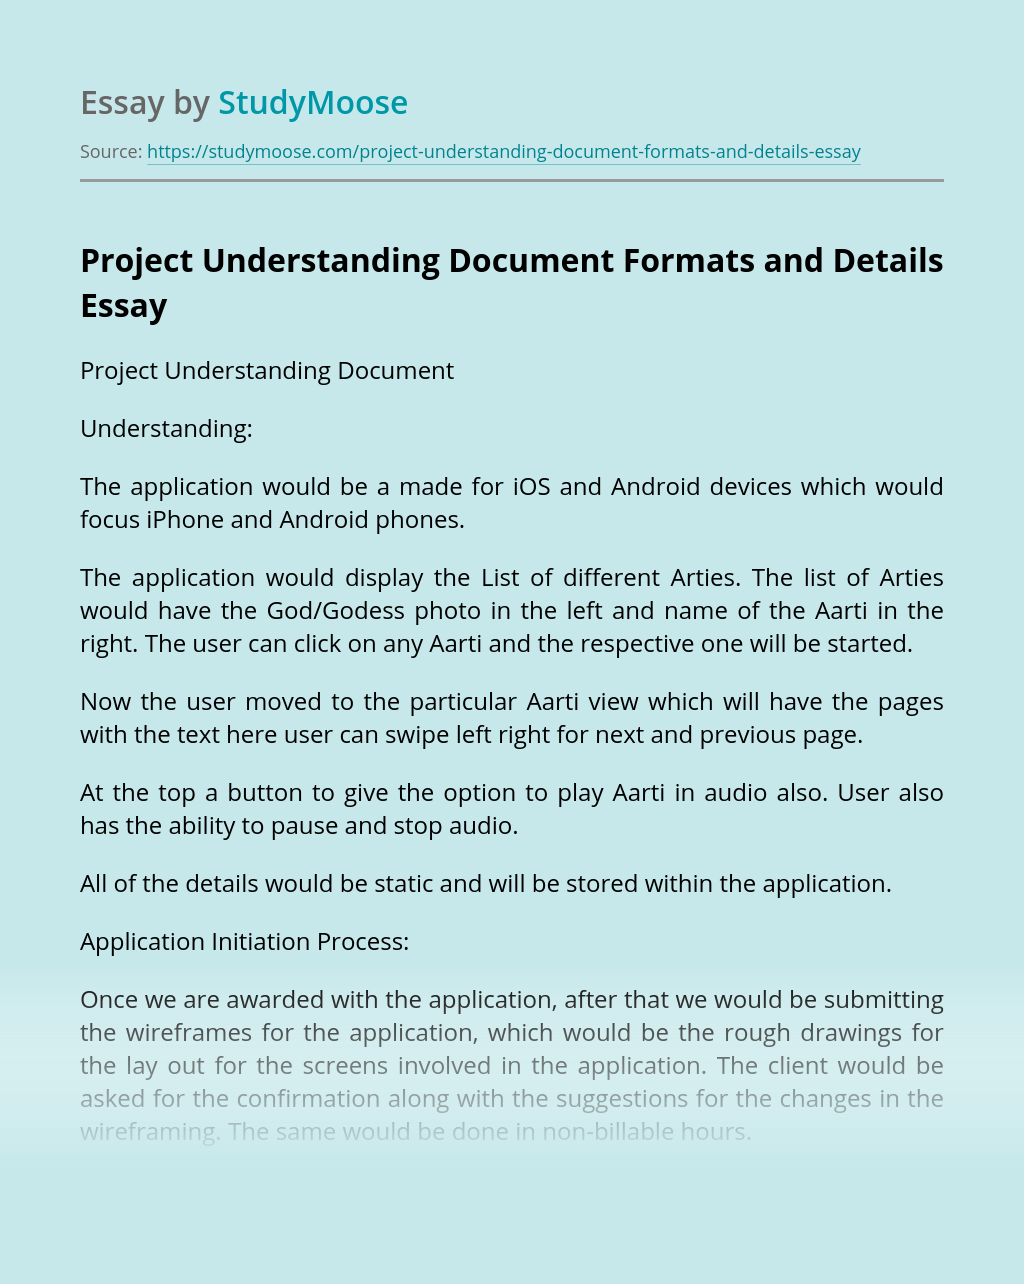 Project Understanding Document Formats and Details